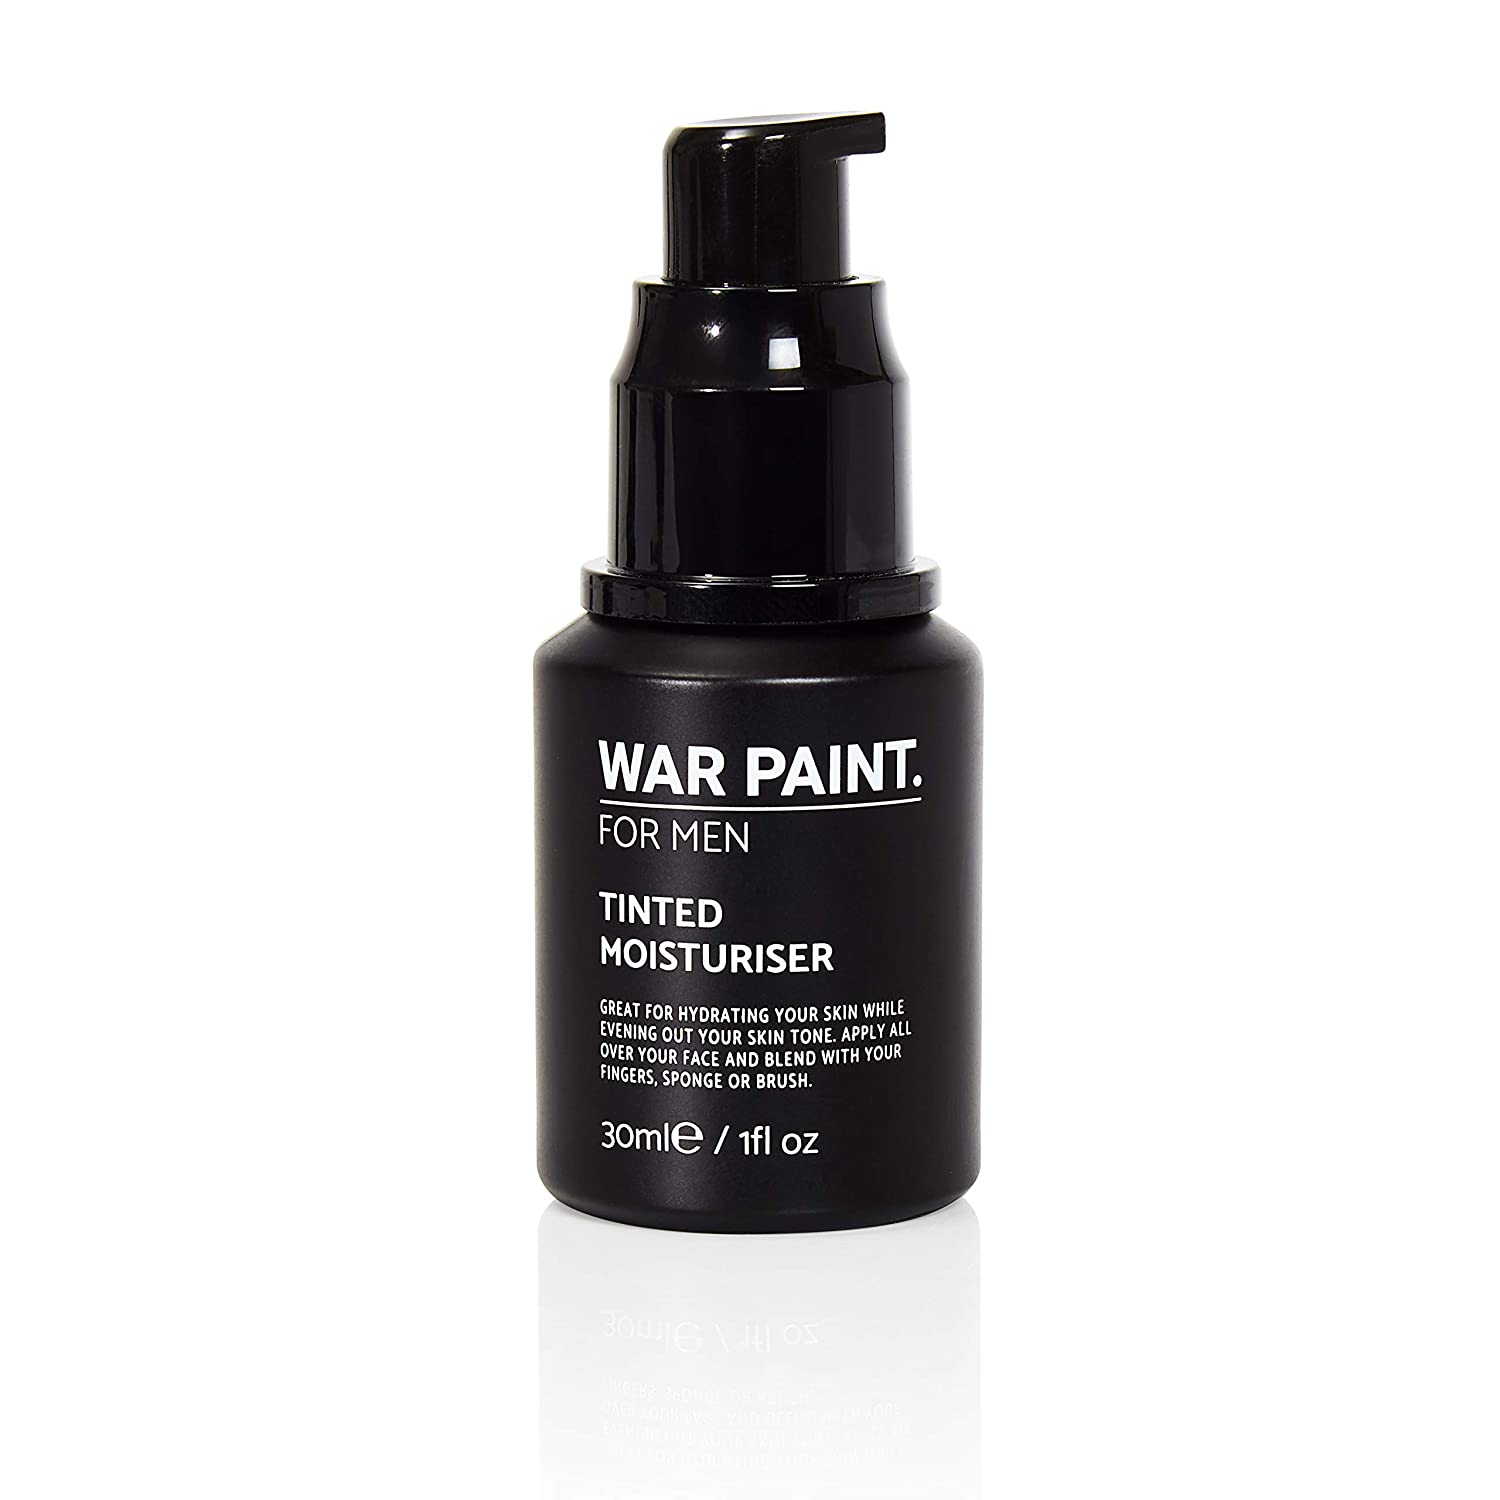 War Paint Men's Tinted Moisturiser - (Shade Light) - 5 Shades available - Makeup Crafted For Men - Cruelty Free Vegan Products - Perfect Tone - Made in The UK